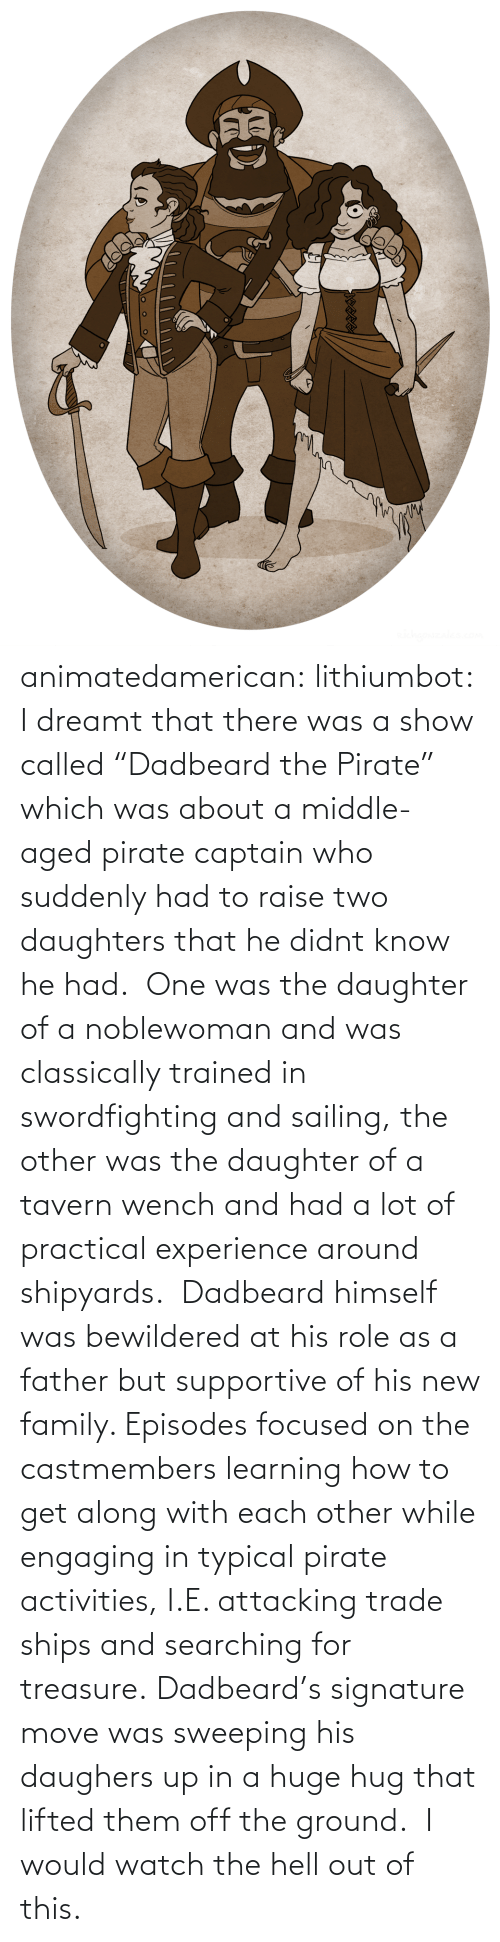 "Activities: animatedamerican: lithiumbot:  I dreamt that there was a show called ""Dadbeard the Pirate"" which was about a middle-aged pirate captain who suddenly had to raise two daughters that he didnt know he had.  One was the daughter of a noblewoman and was classically trained in swordfighting and sailing, the other was the daughter of a tavern wench and had a lot of practical experience around shipyards.  Dadbeard himself was bewildered at his role as a father but supportive of his new family. Episodes focused on the castmembers learning how to get along with each other while engaging in typical pirate activities, I.E. attacking trade ships and searching for treasure. Dadbeard's signature move was sweeping his daughers up in a huge hug that lifted them off the ground.   I would watch the hell out of this."